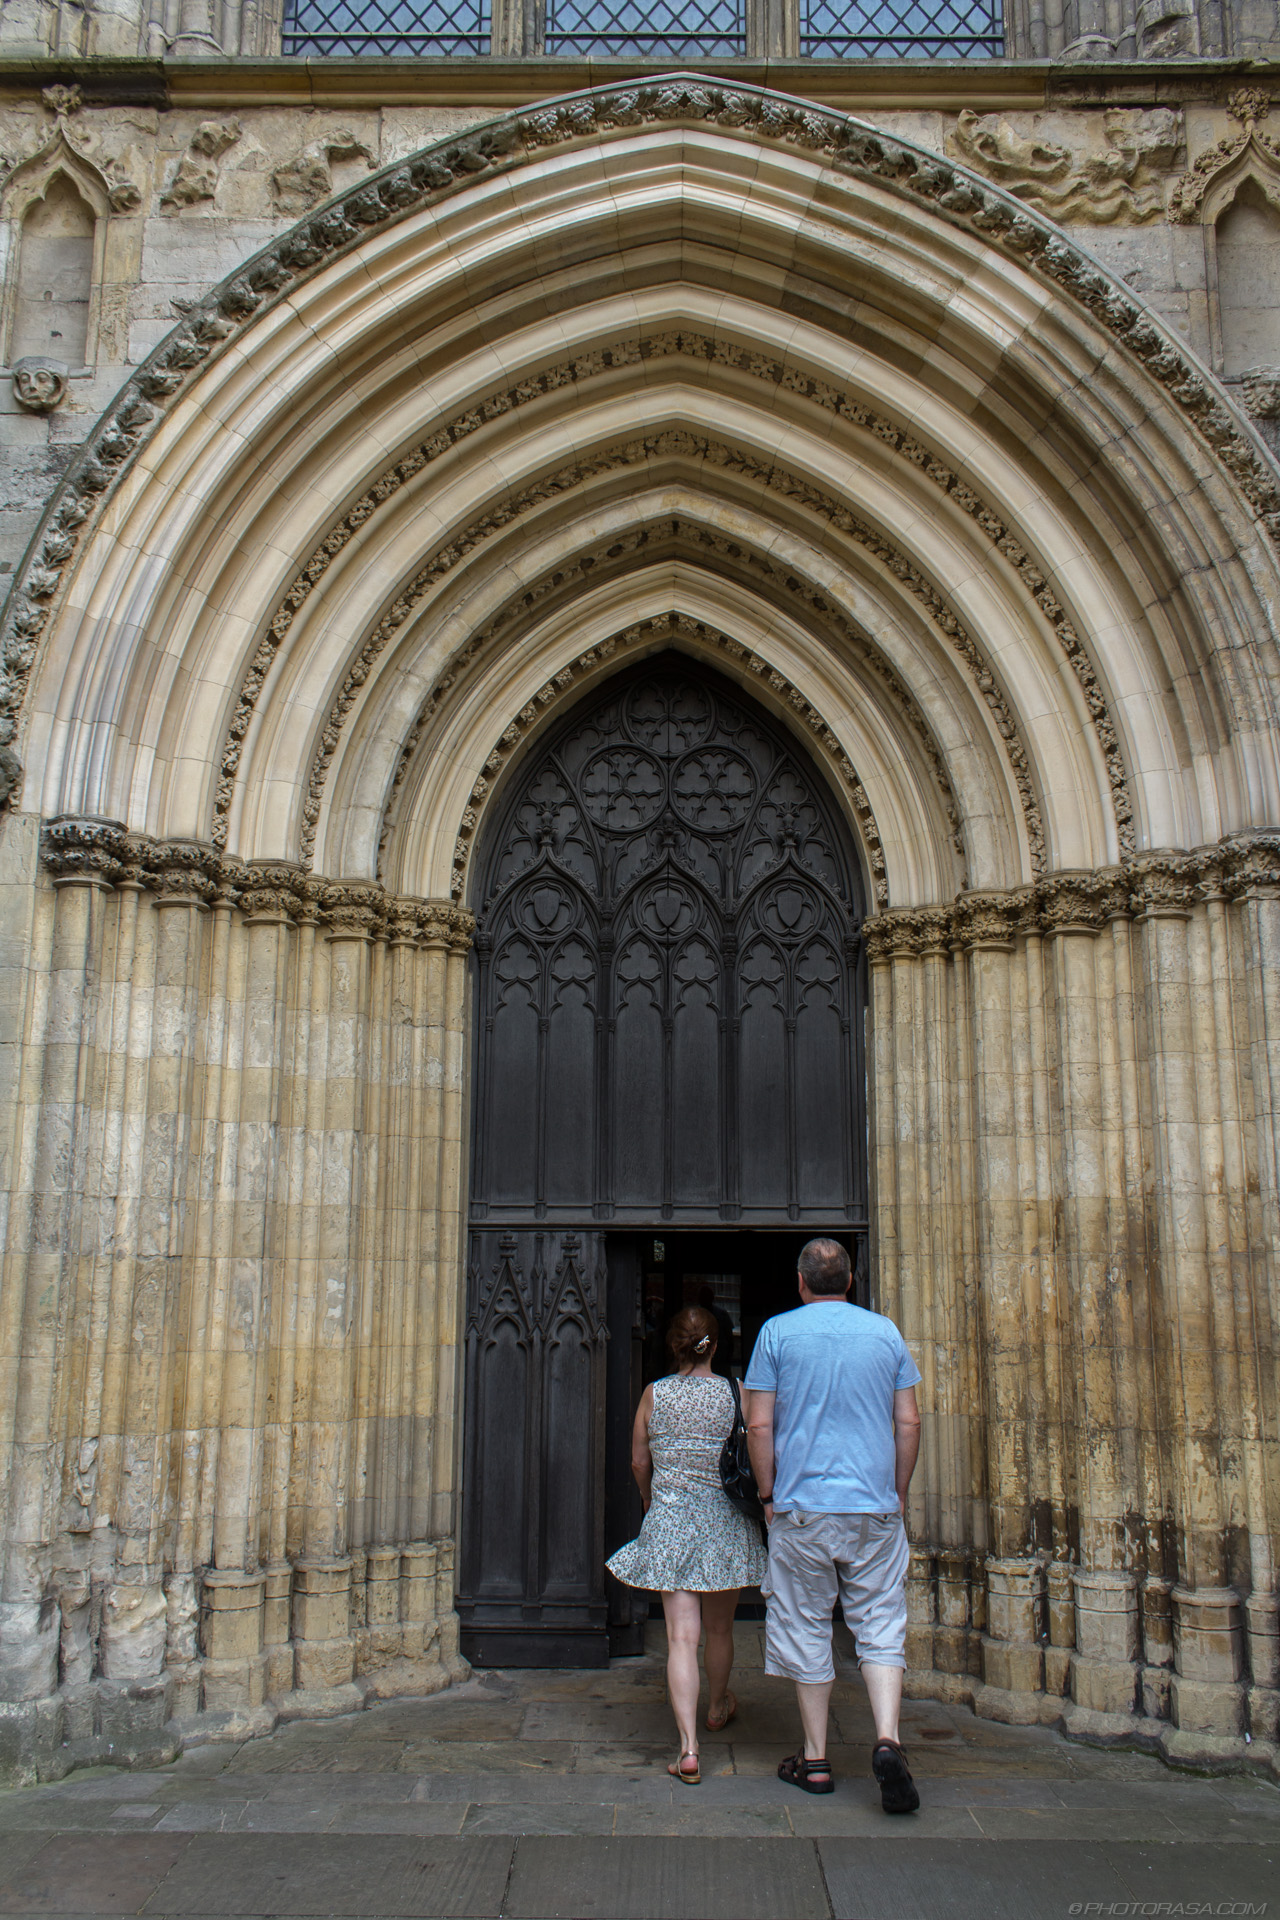 http://photorasa.com/yorkminster-cathedral/west-entrance-arch/